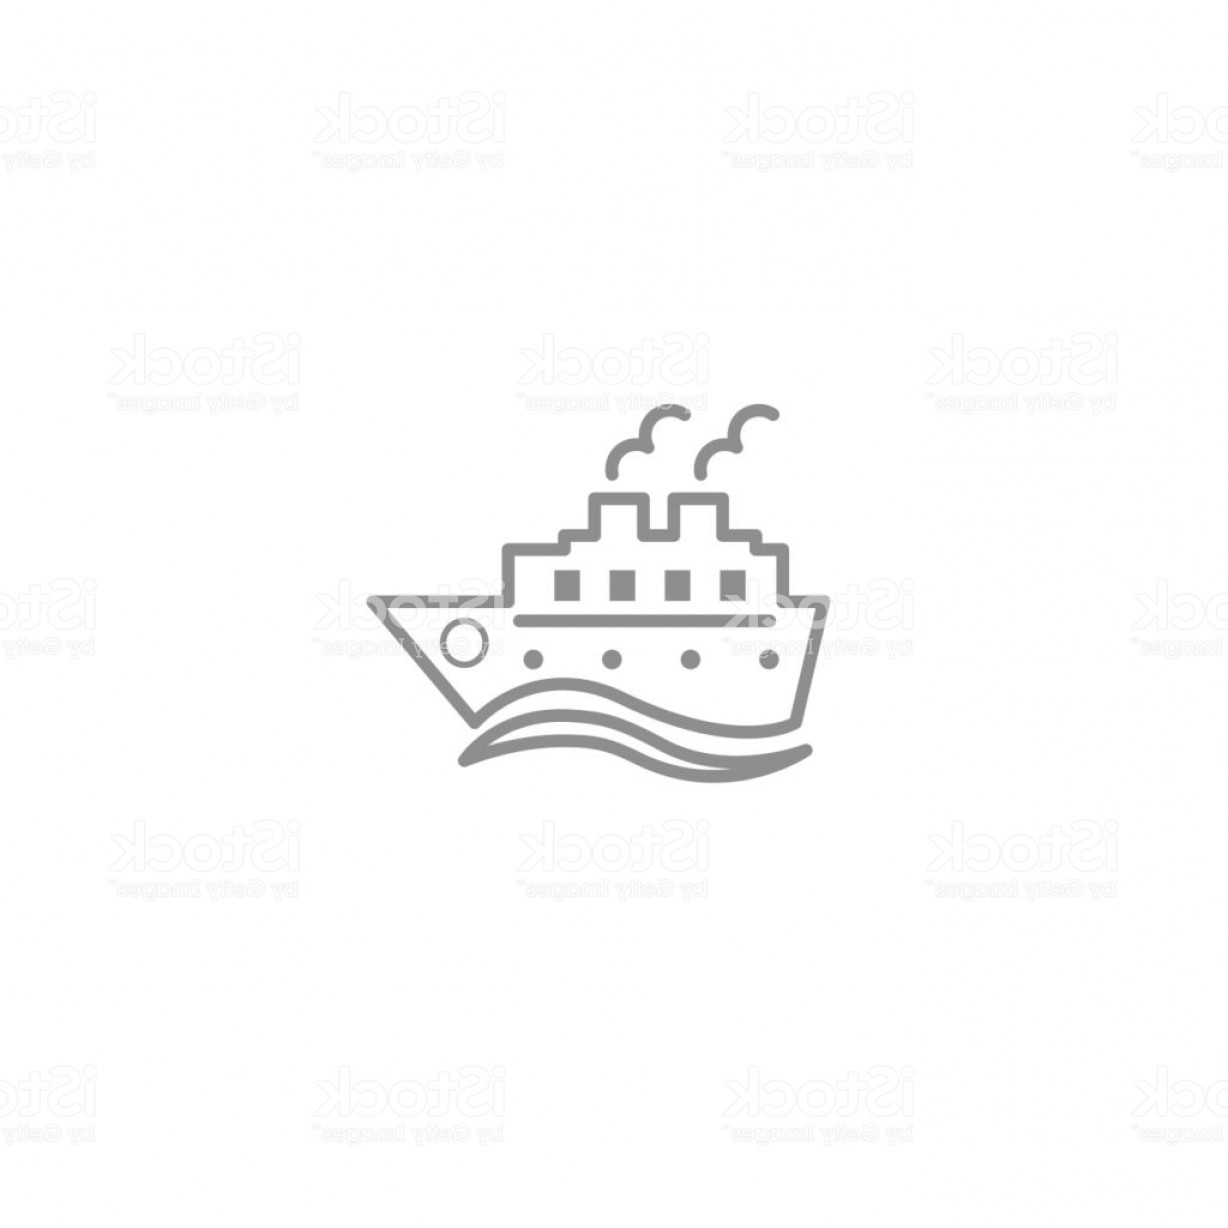 Waves With Cruise Ship Silhouette Vector: Cruise Ship With Waves Line Thin Simple Icon Trip Vacation Travel And Cargo Symbol Gm